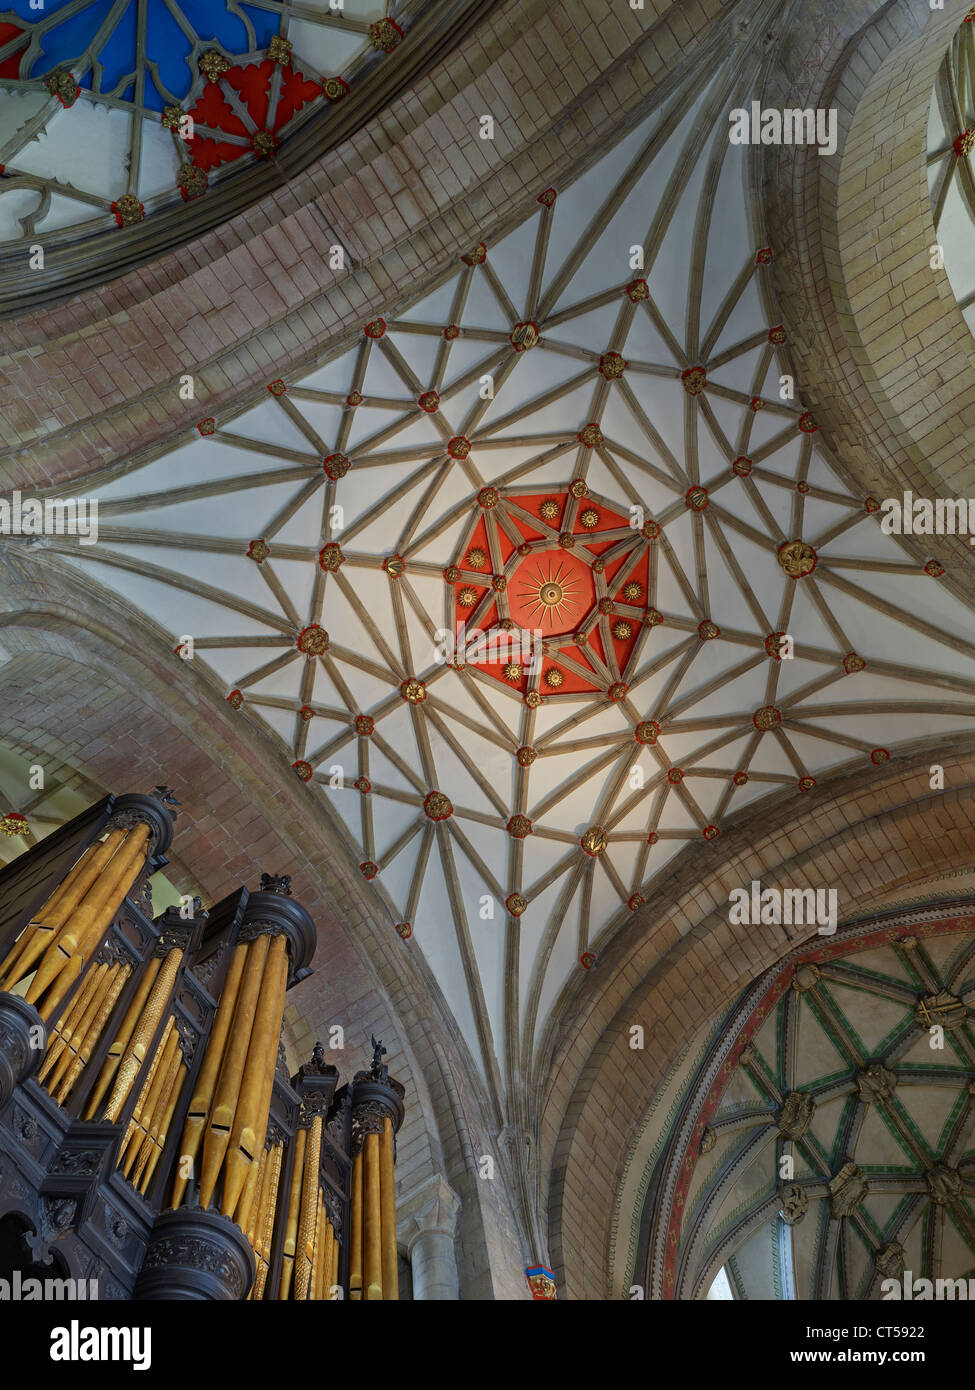 Tewkesbury Abbey net vaulting in quire or choir - Stock Image